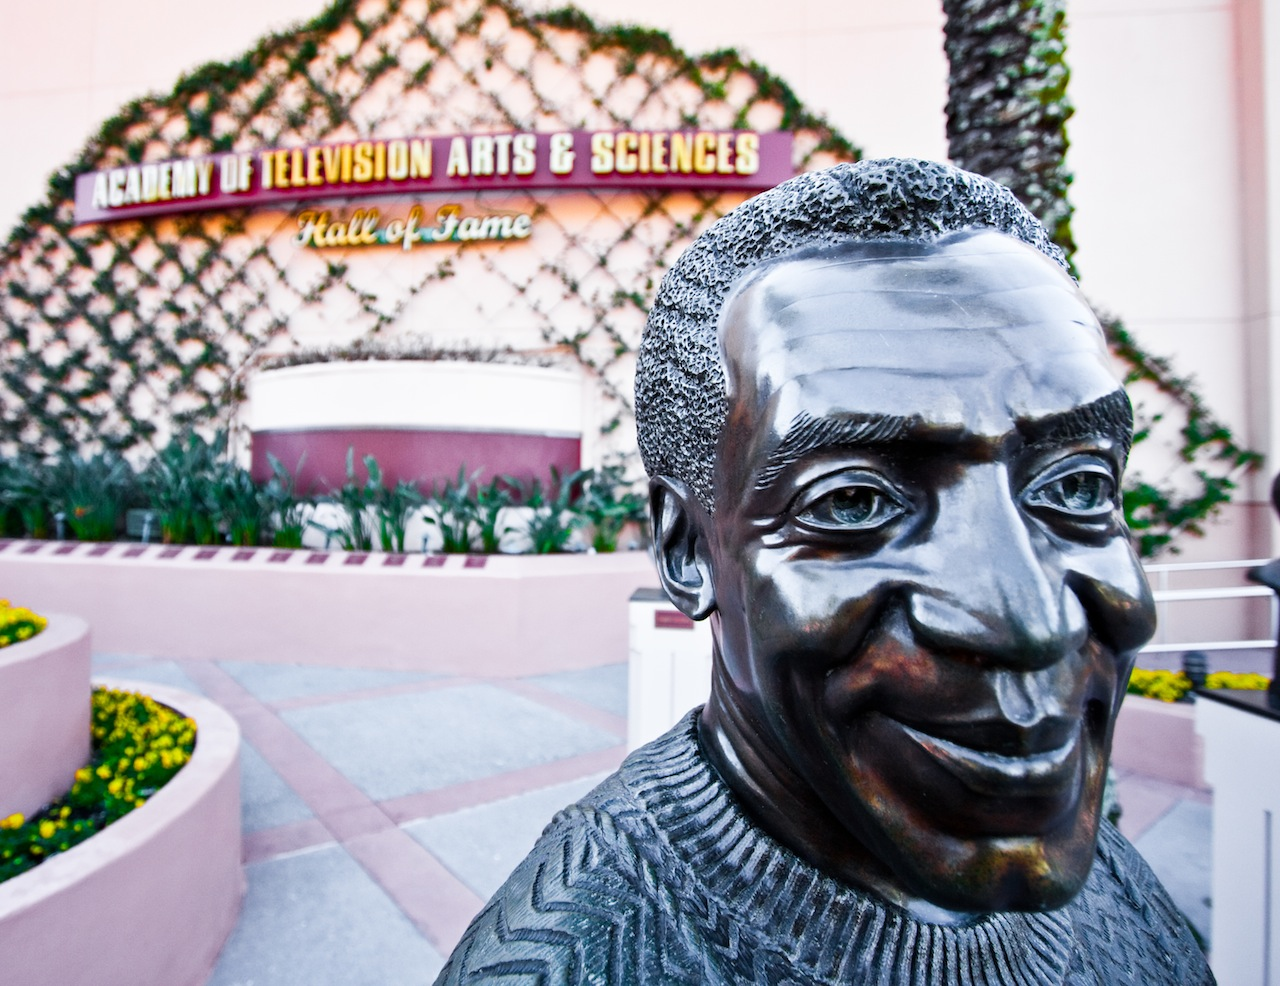 The bust of Bill Cosby at Disney's Academy of Television Arts & Sciences Hall of Fame (photo by nickelmedia/Flickr)